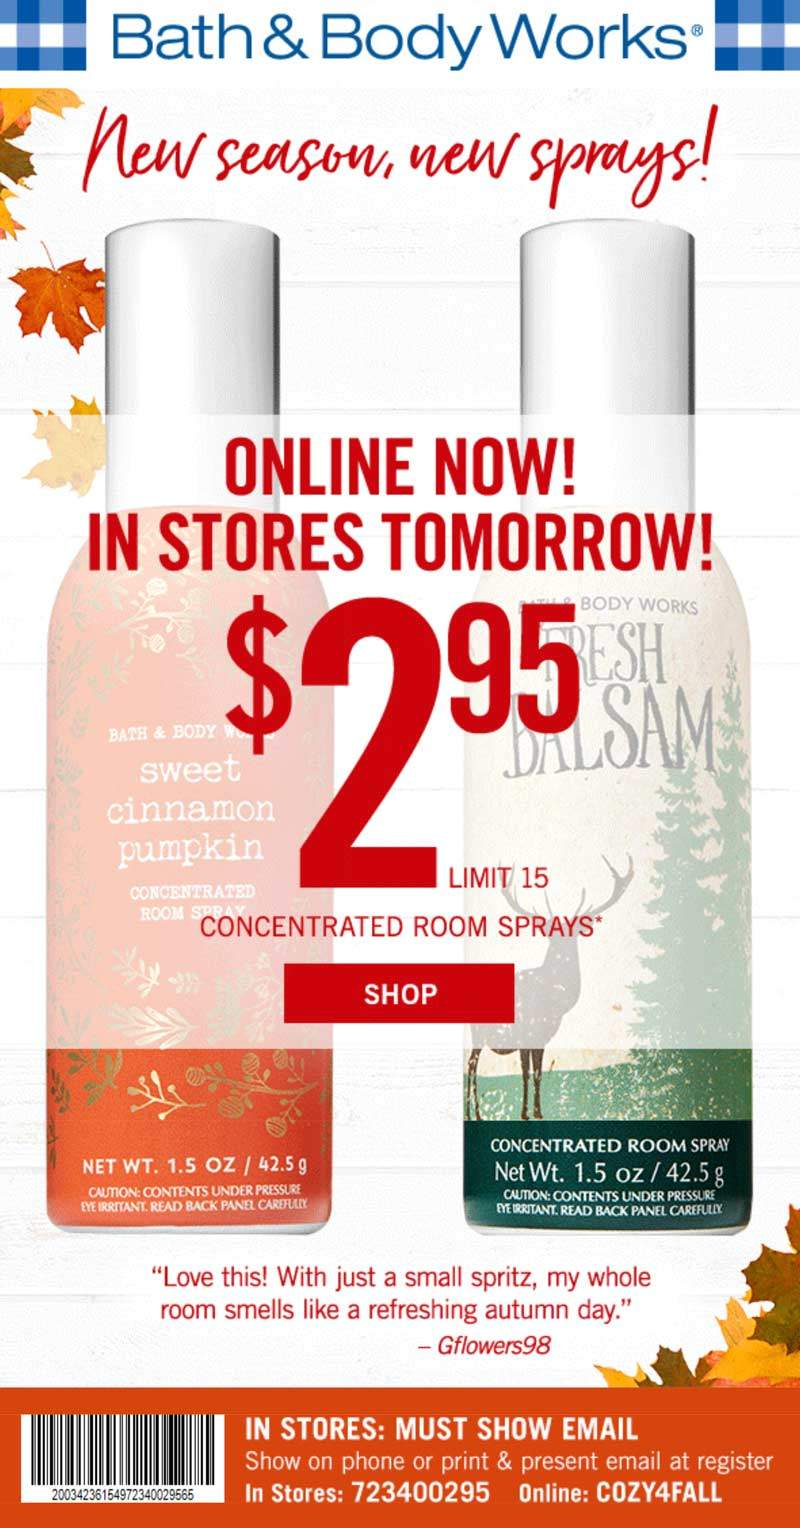 Bath&BodyWorks.com Promo Coupon $3 room sprays today at Bath & Body Works, or online via pomo code COZY4FALL